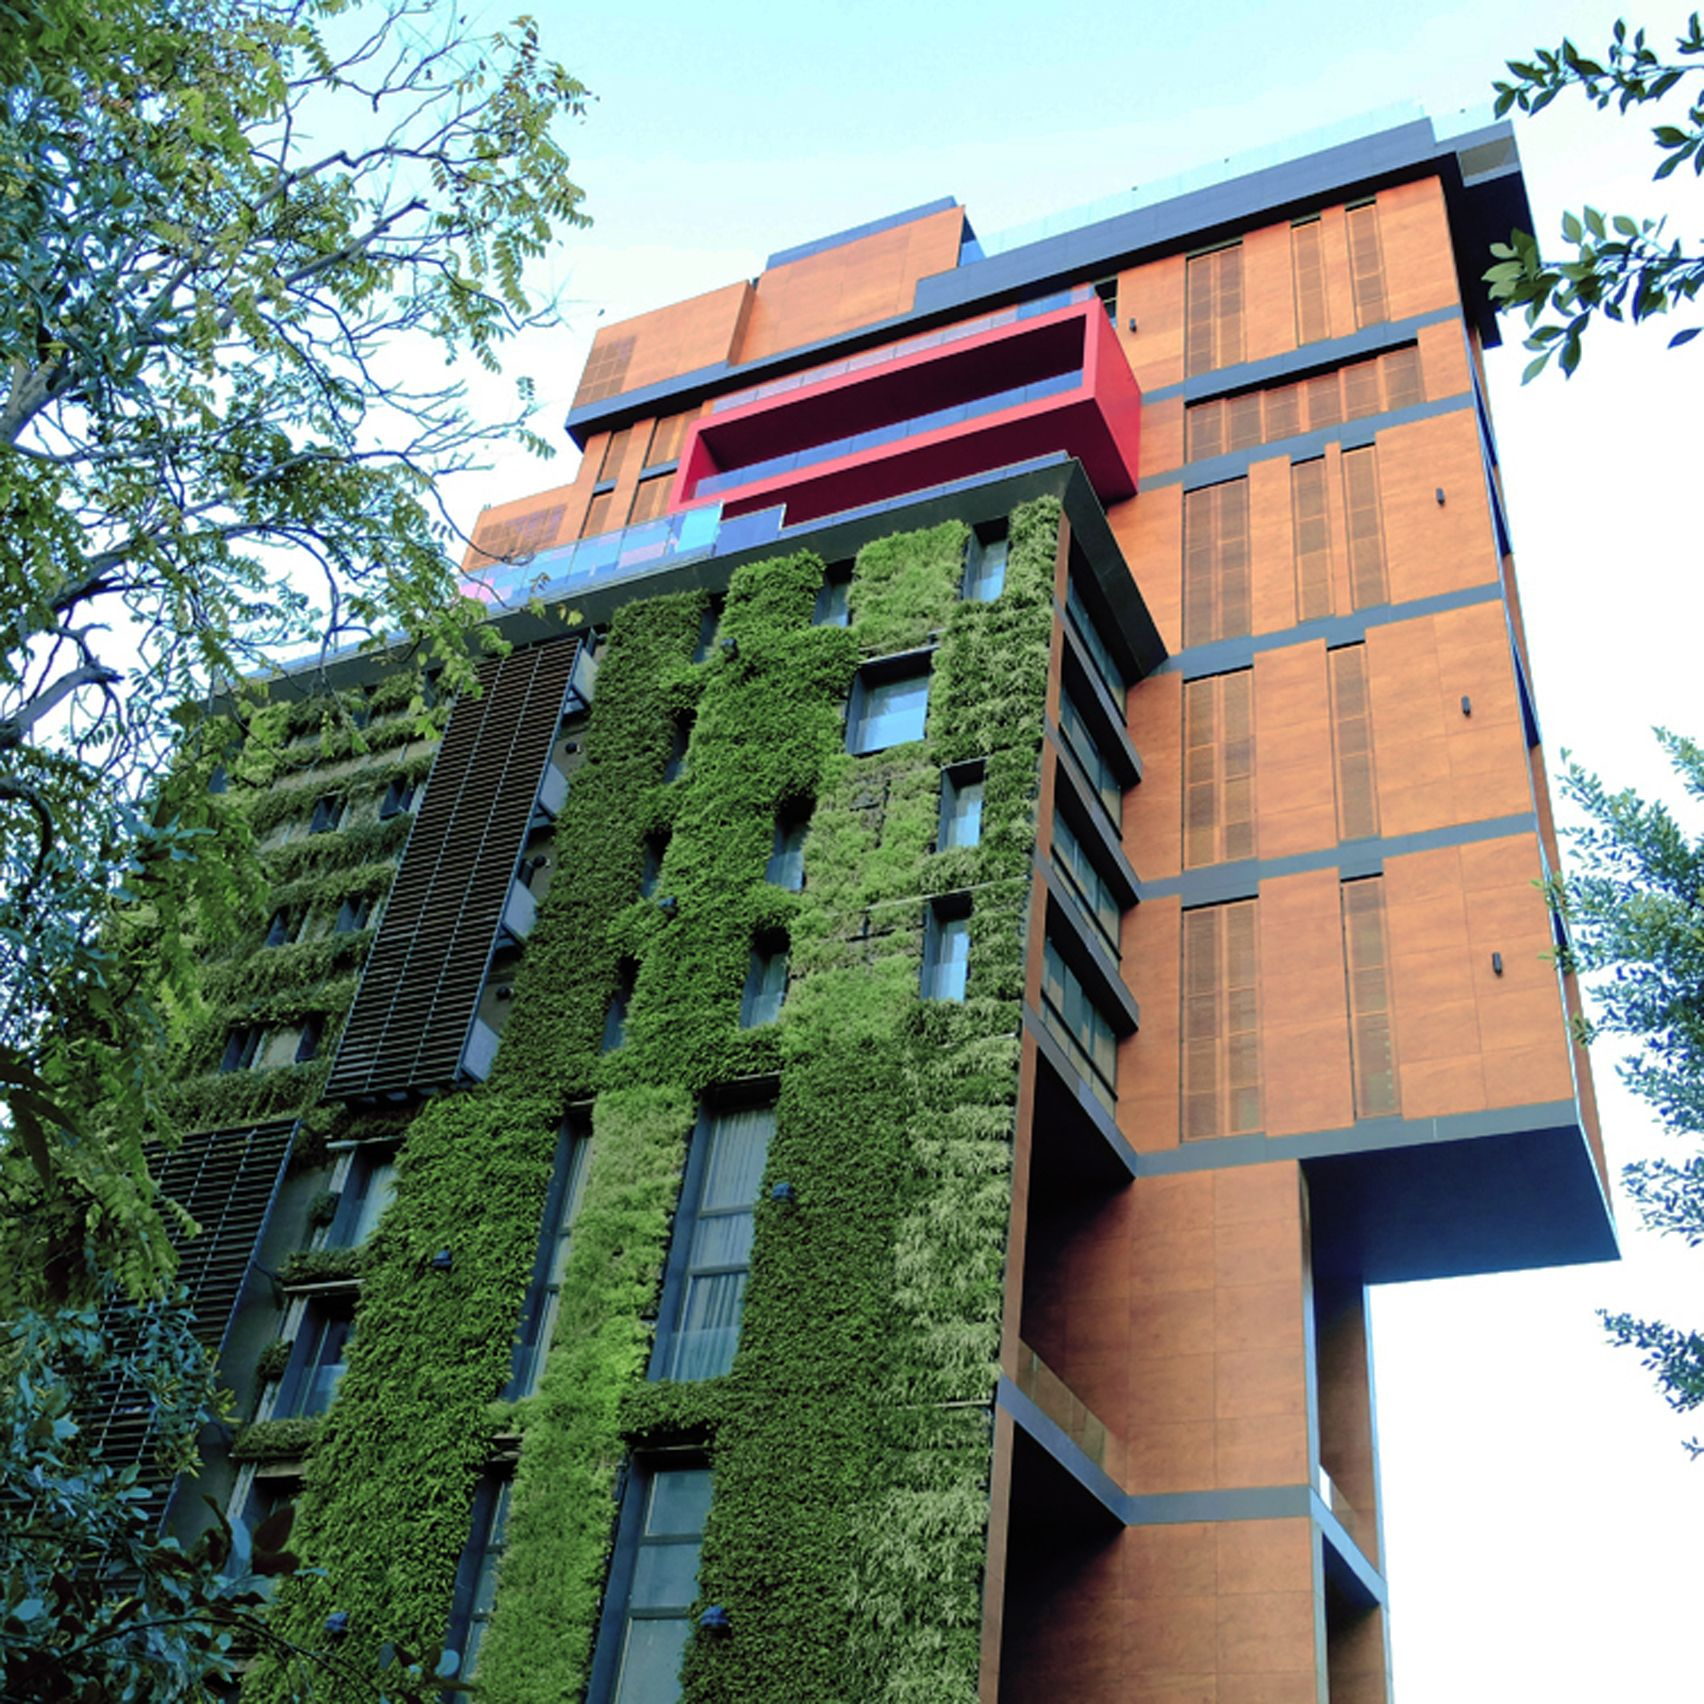 Village Green East Apartments: A Vertical Garden Contrasts With Traditional Timber And